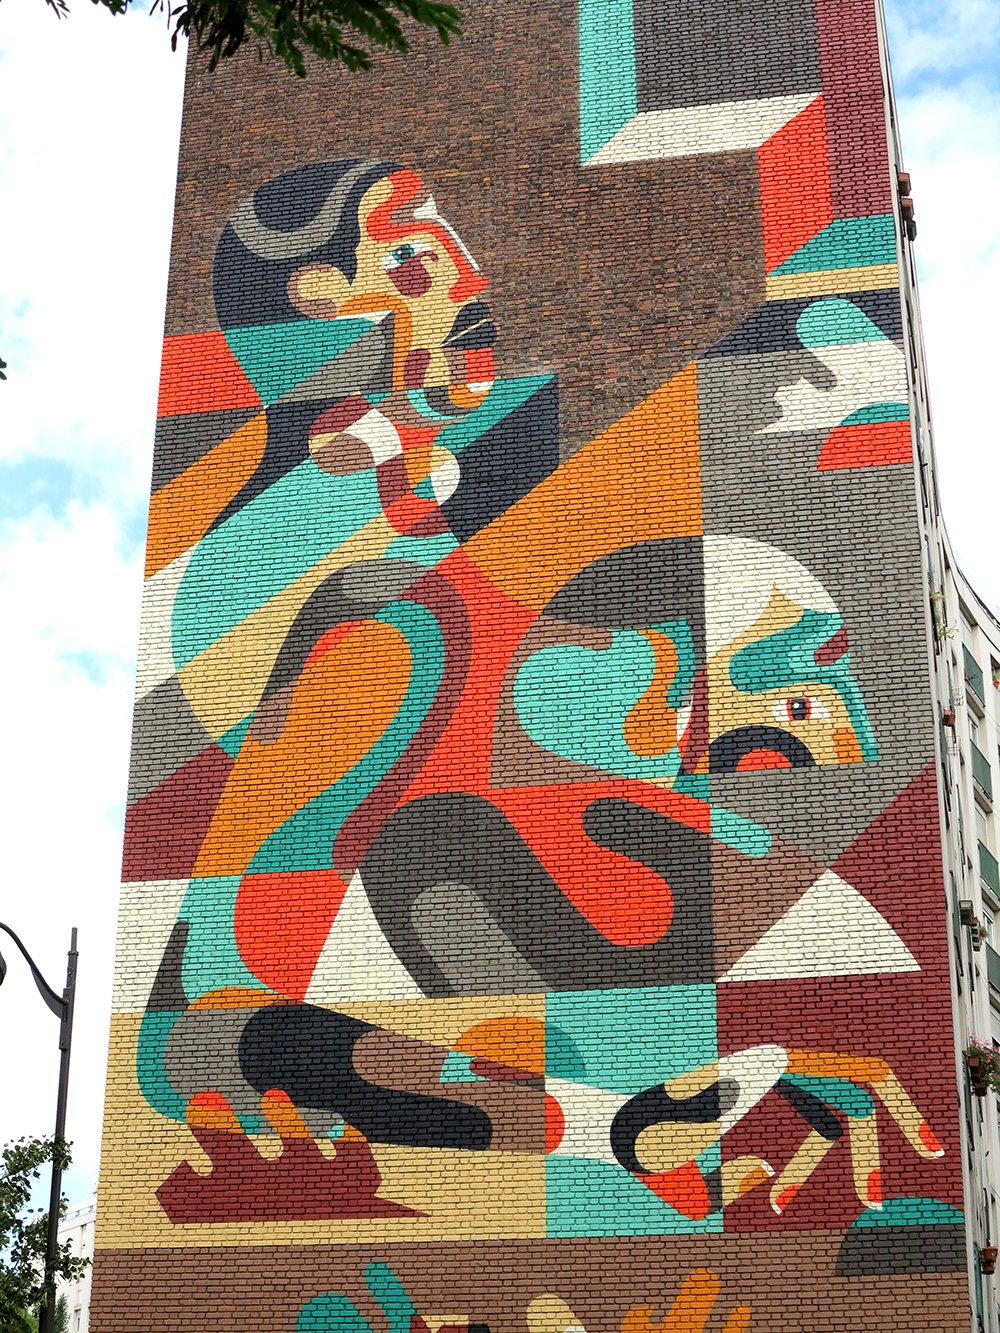 reka-new-mural-in-paris-france-06